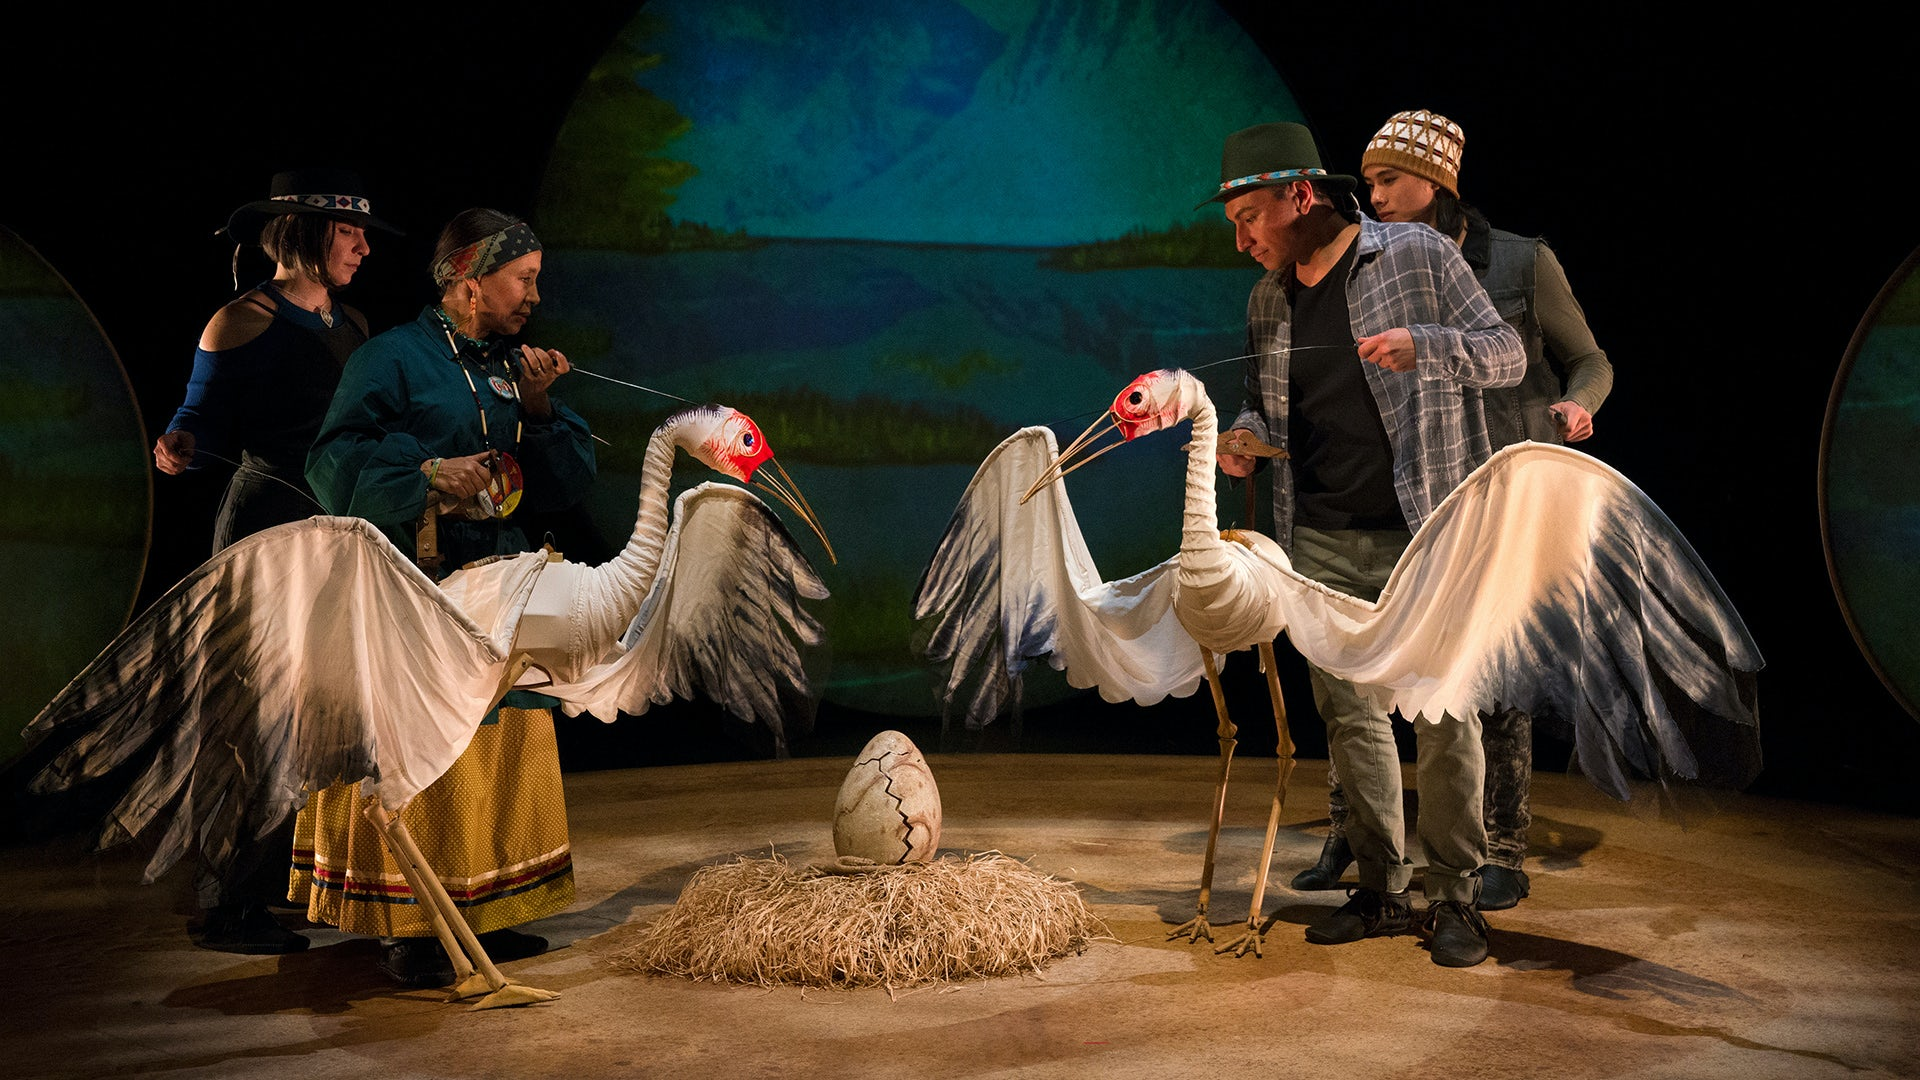 Several cast members operate two large crane puppets in a scene from Ibex Puppetry's Ajijaak on Turtle Island.